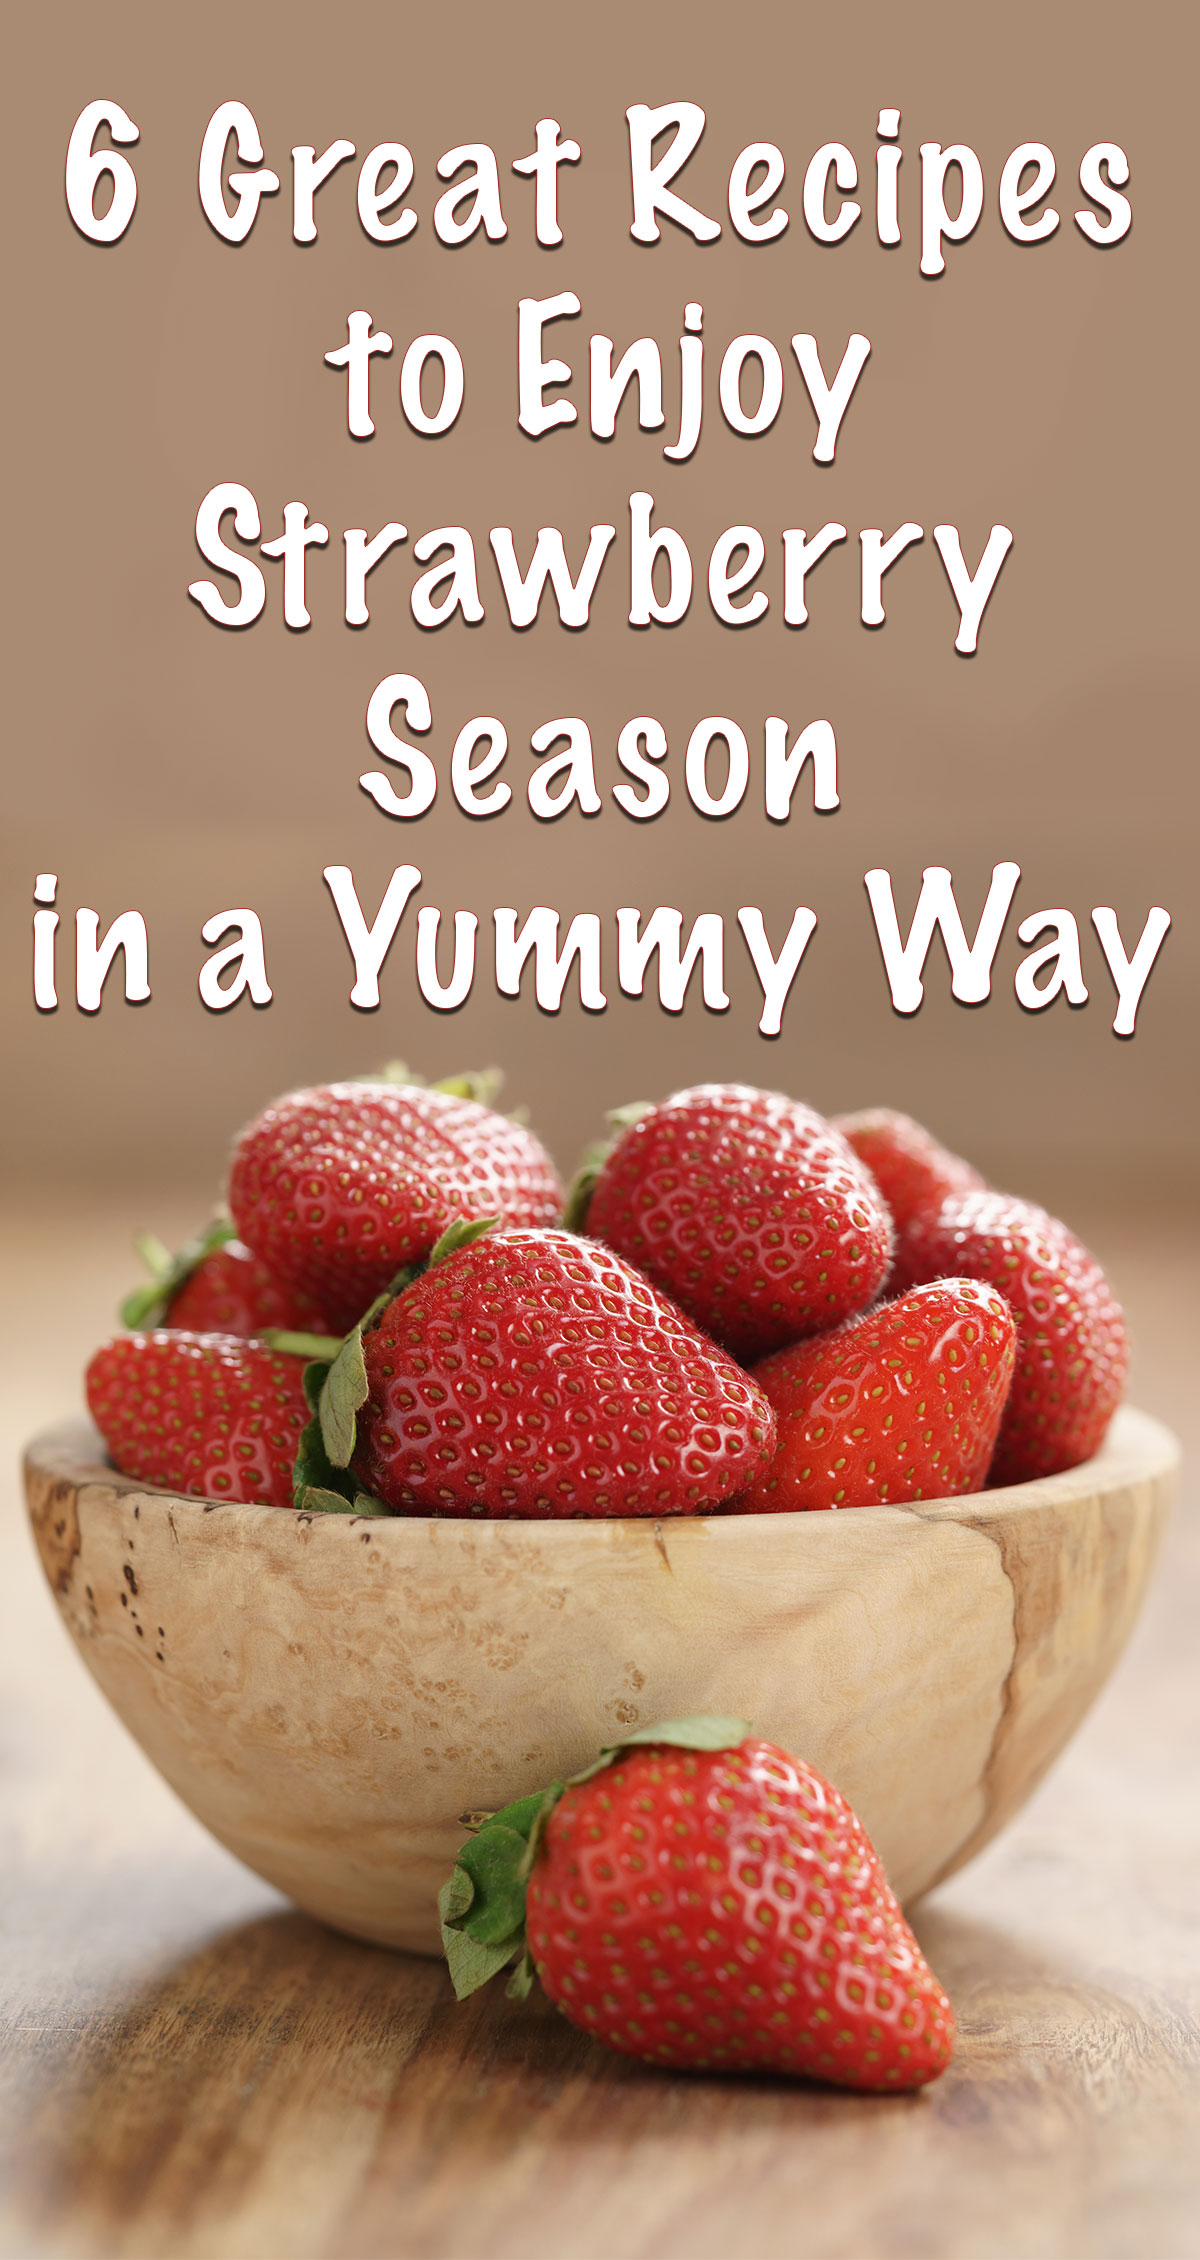 6 Great Recipes to Enjoy Strawberry Season in a Yummy Way Pin